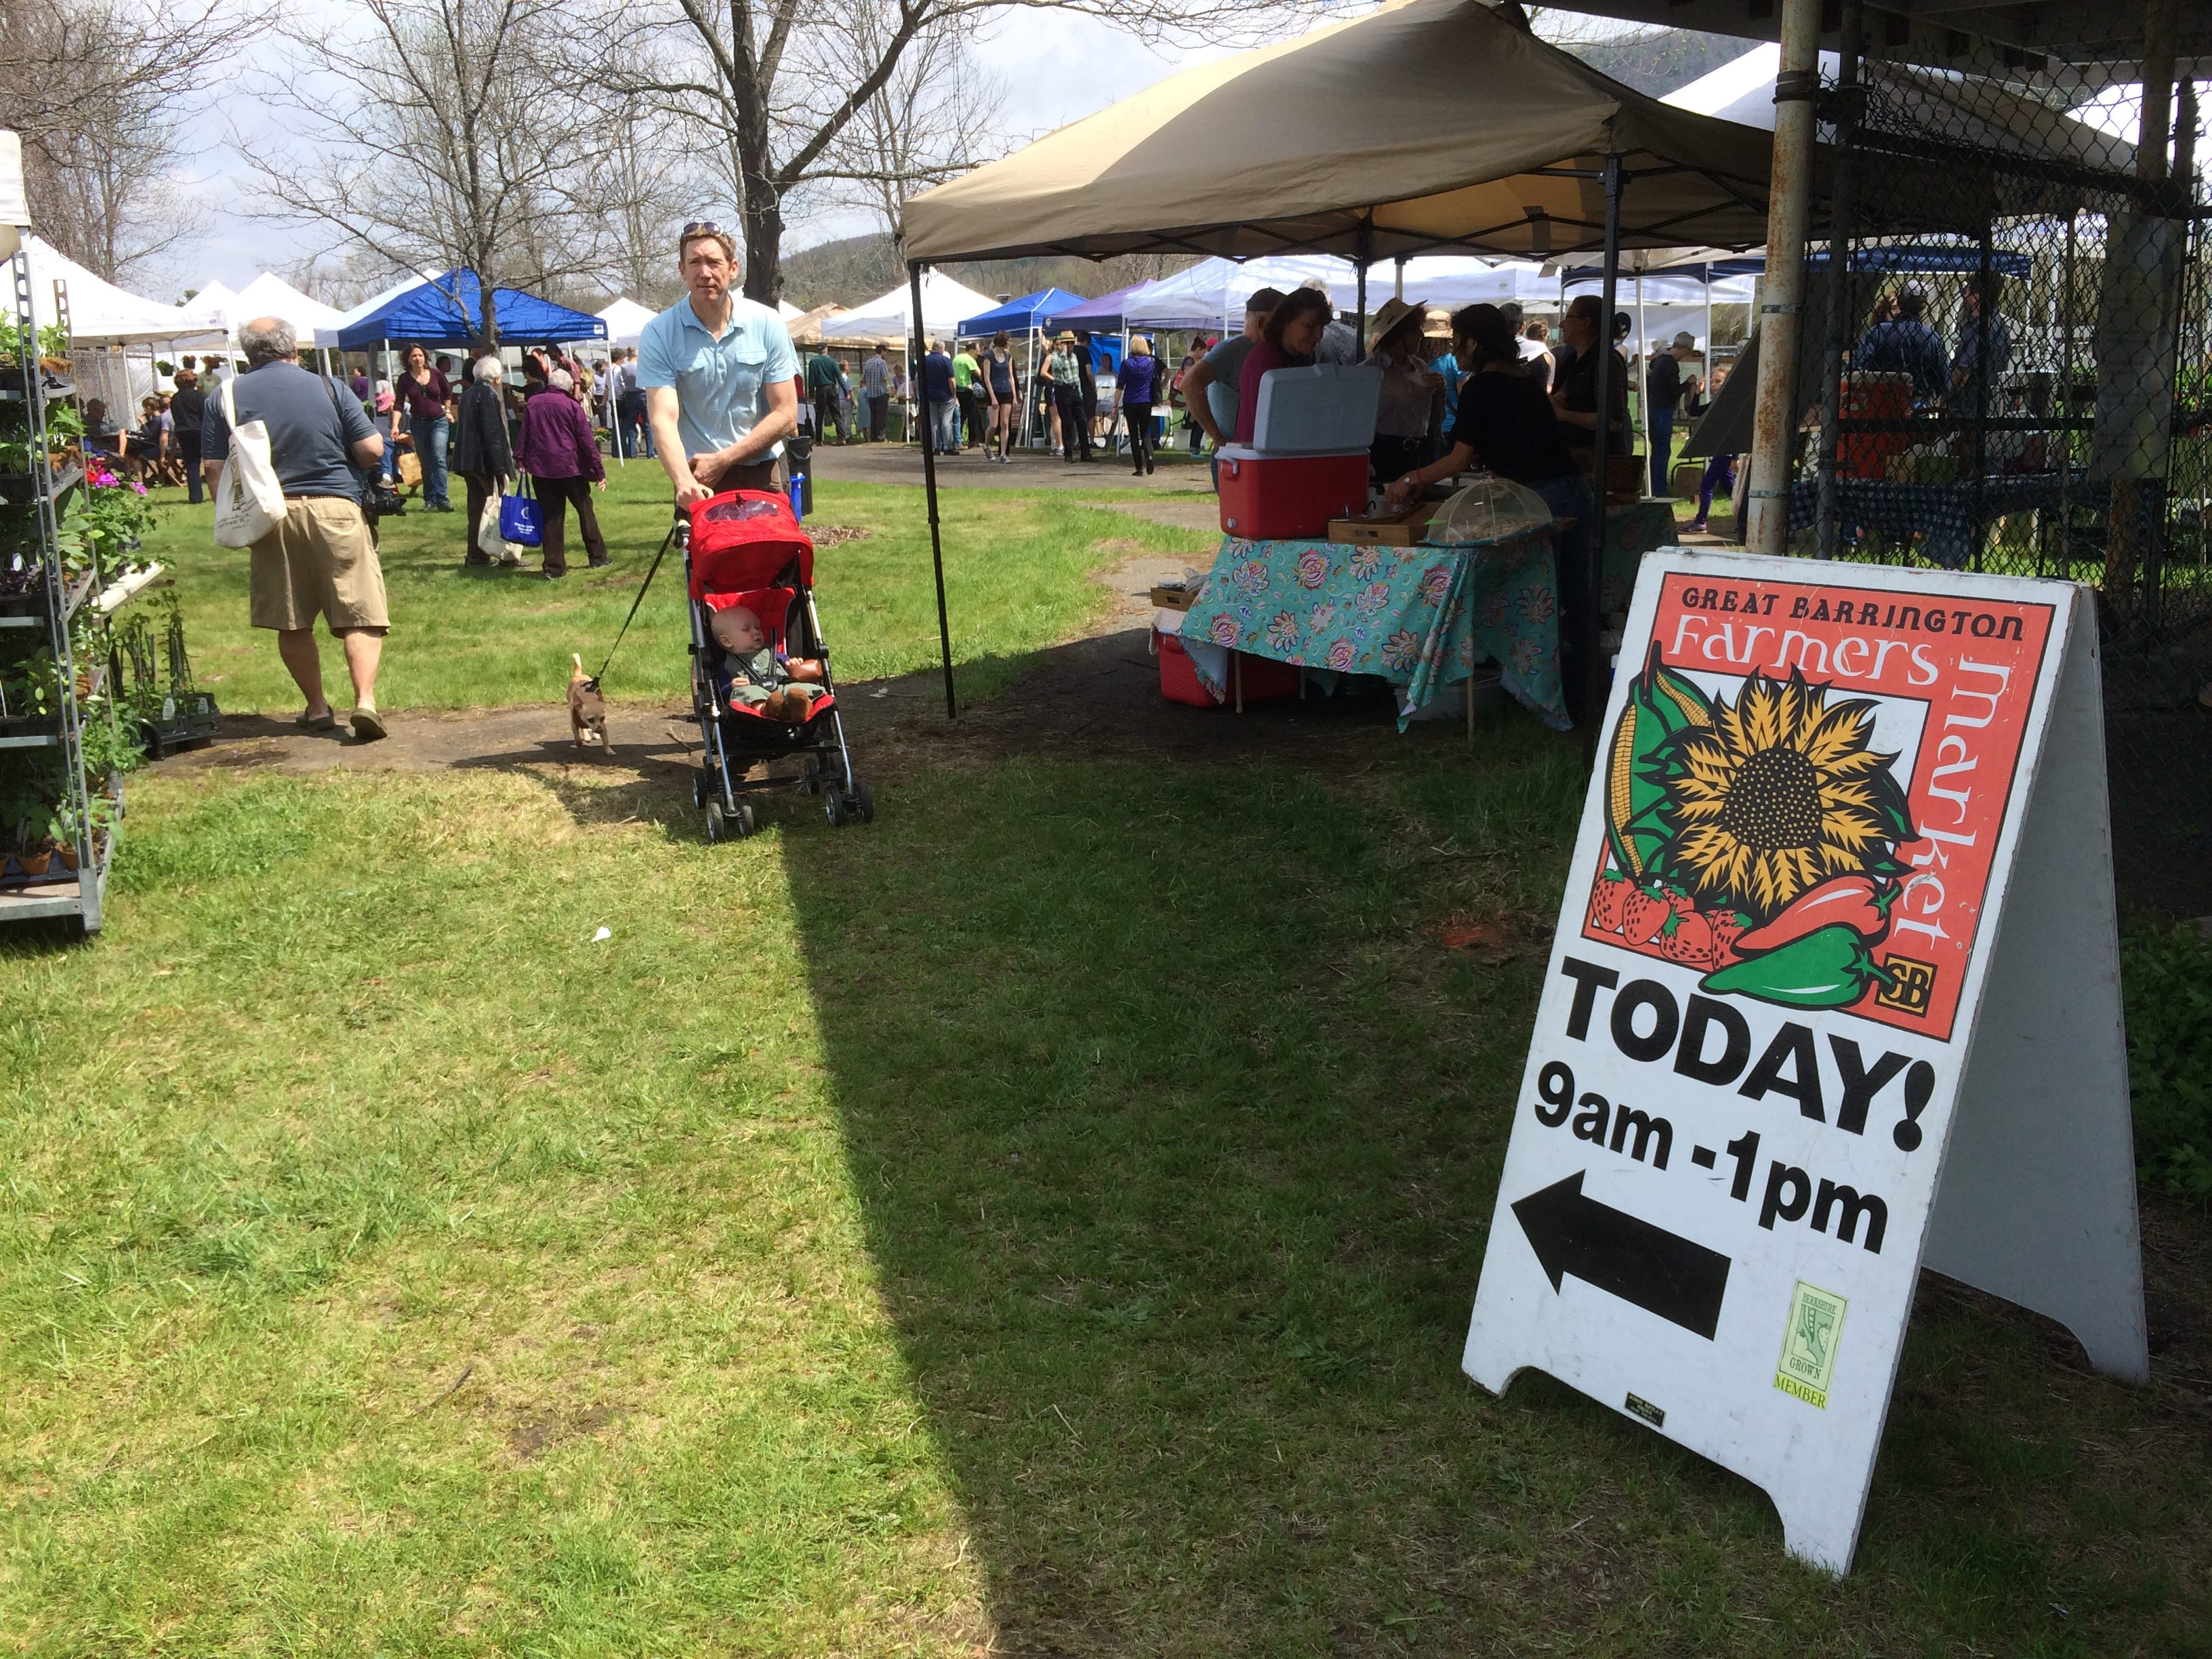 Great Barrington Farmers Market on opening day.